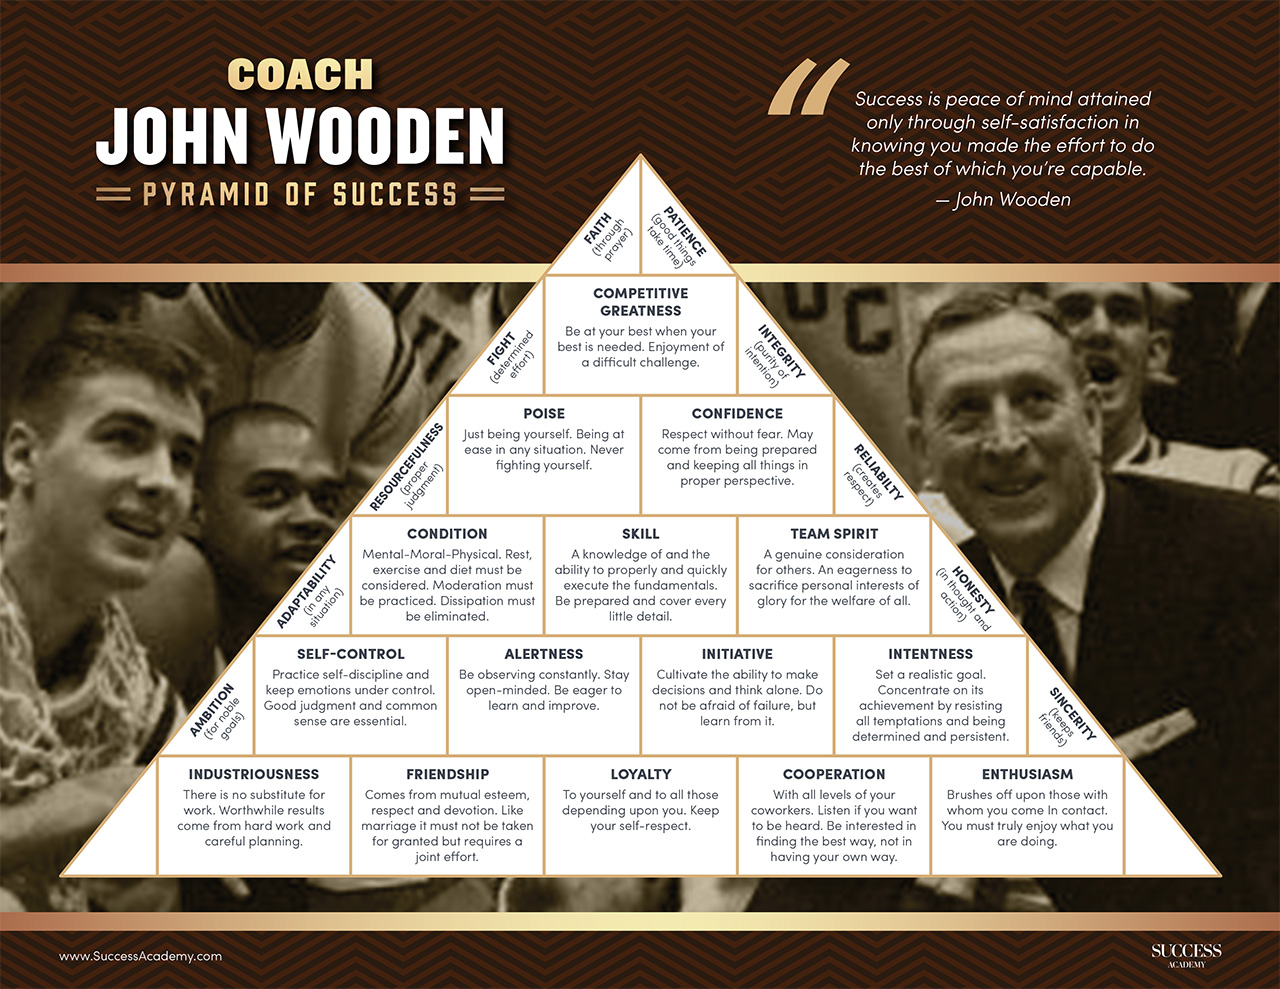 image about John Wooden Pyramid of Success Printable identify Pyramid of Good results - Teach John Wood